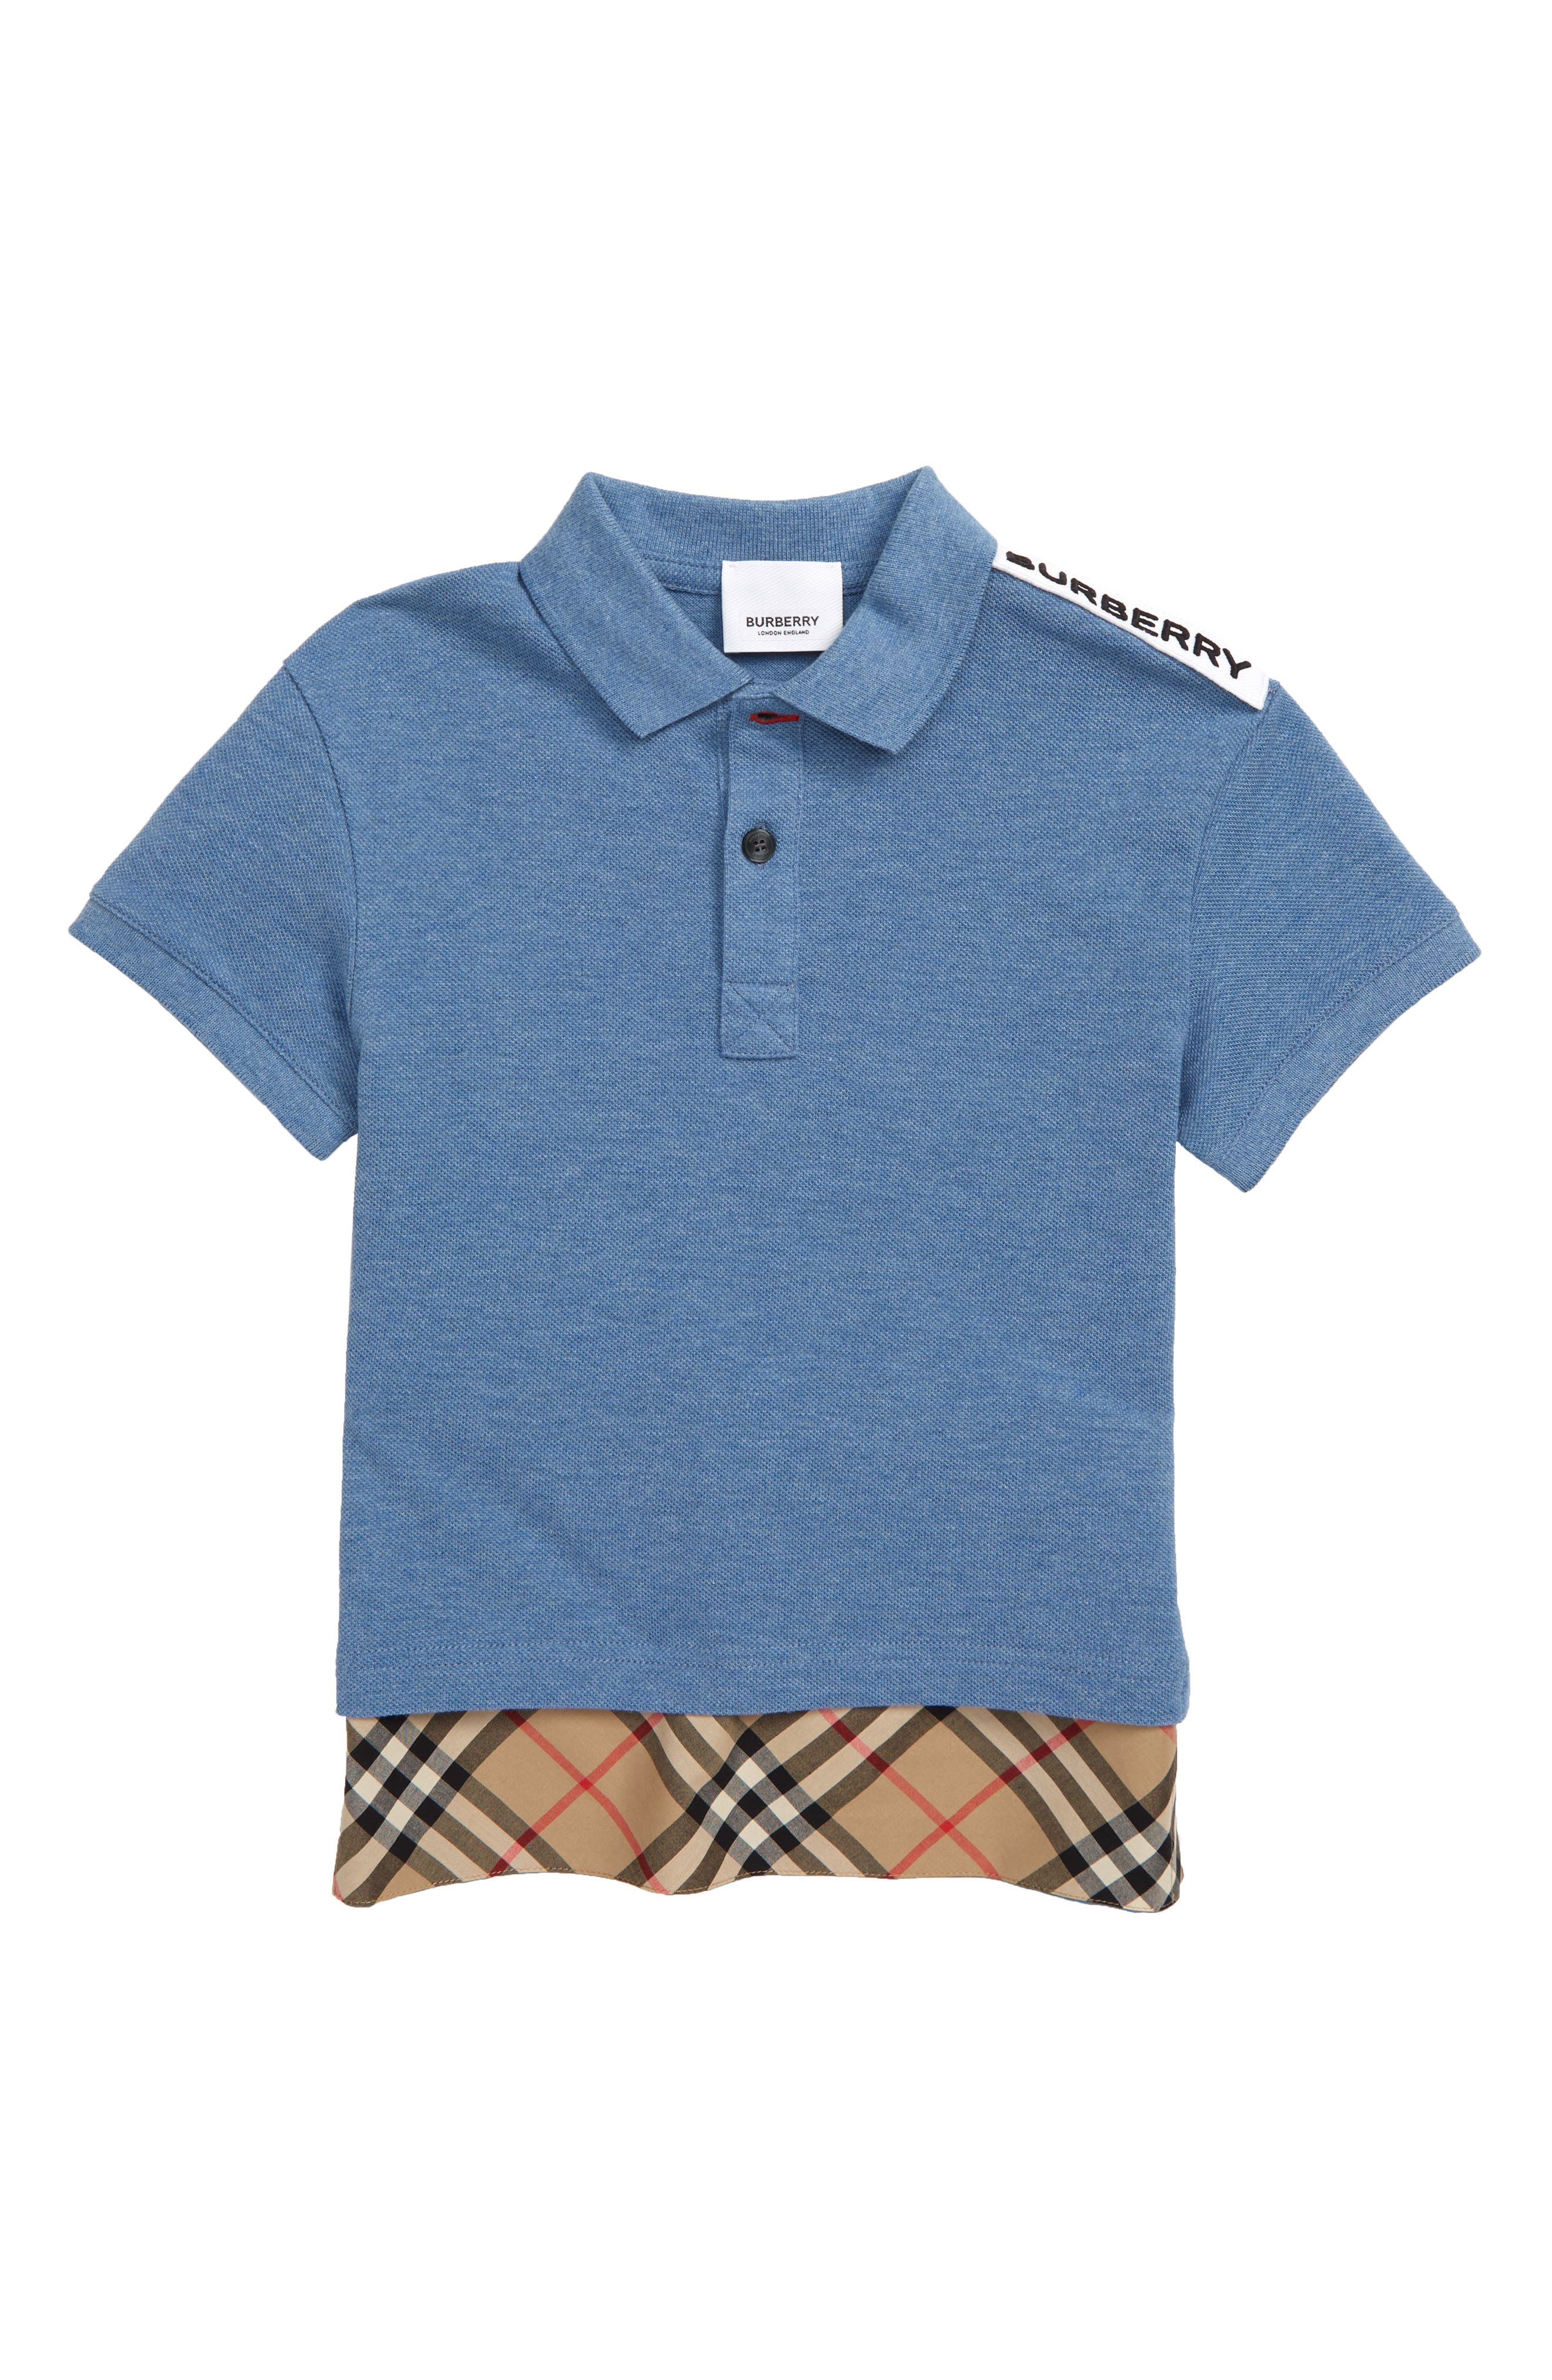 e12950a34 Burberry for Boys Polo Shirts: Clothing, Shoes & Accessories   Nordstrom